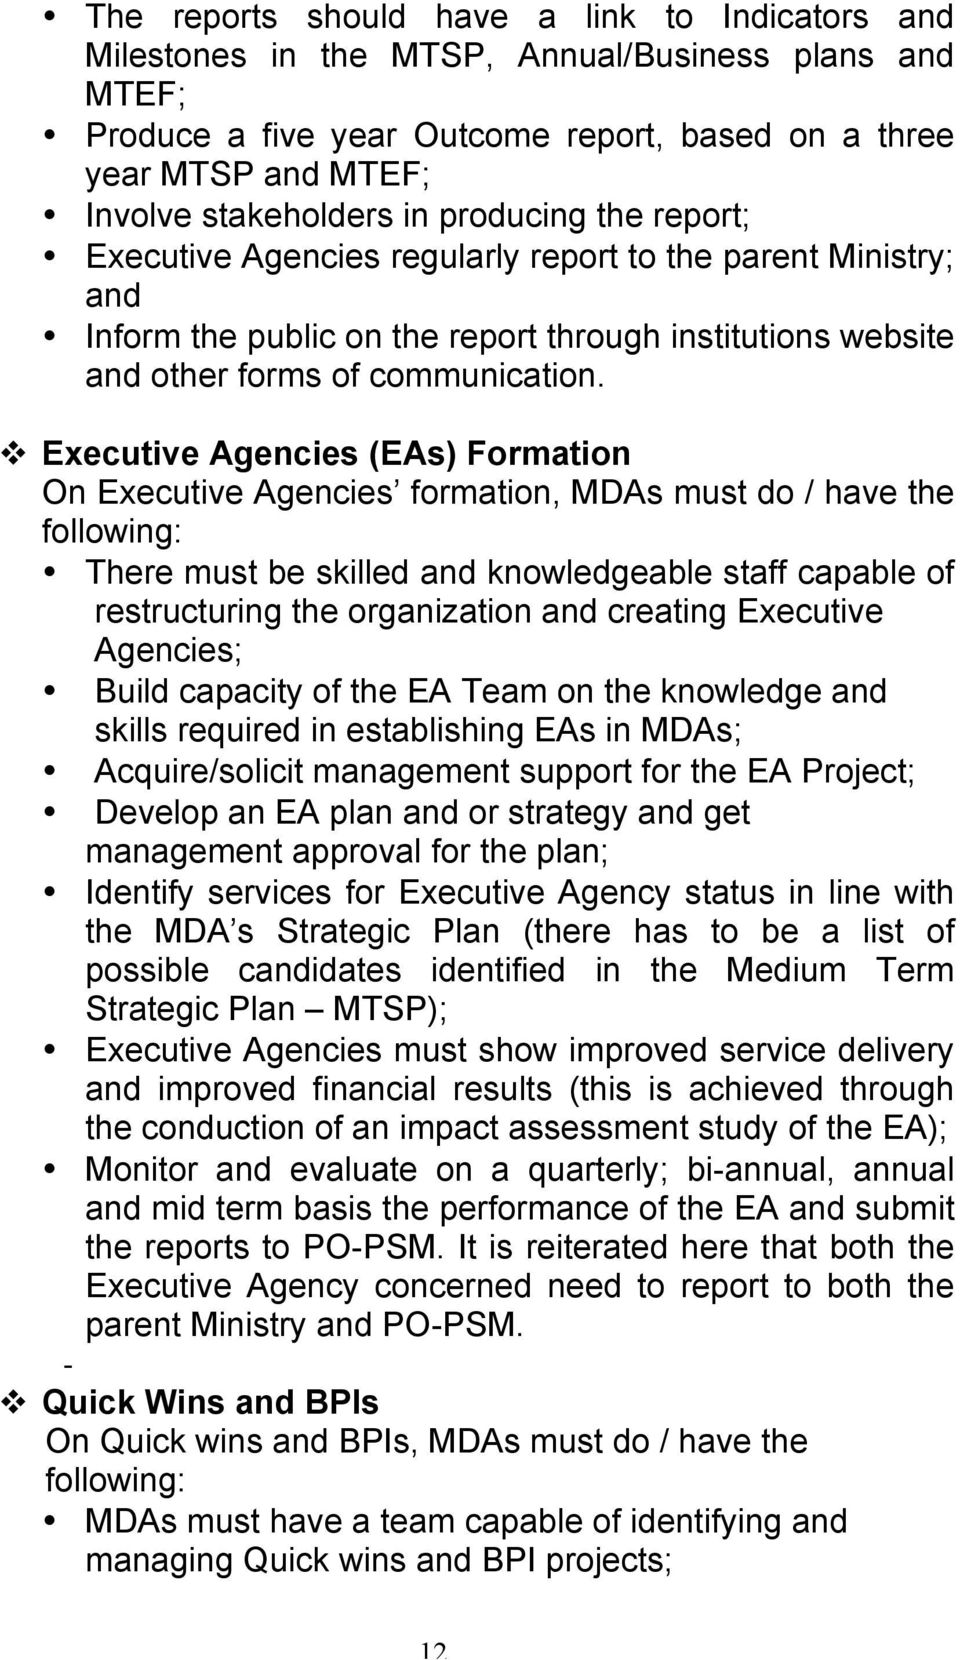 Executive Agencies (EAs) Formation On Executive Agencies formation, MDAs must do / have the following: There must be skilled and knowledgeable staff capable of restructuring the organization and